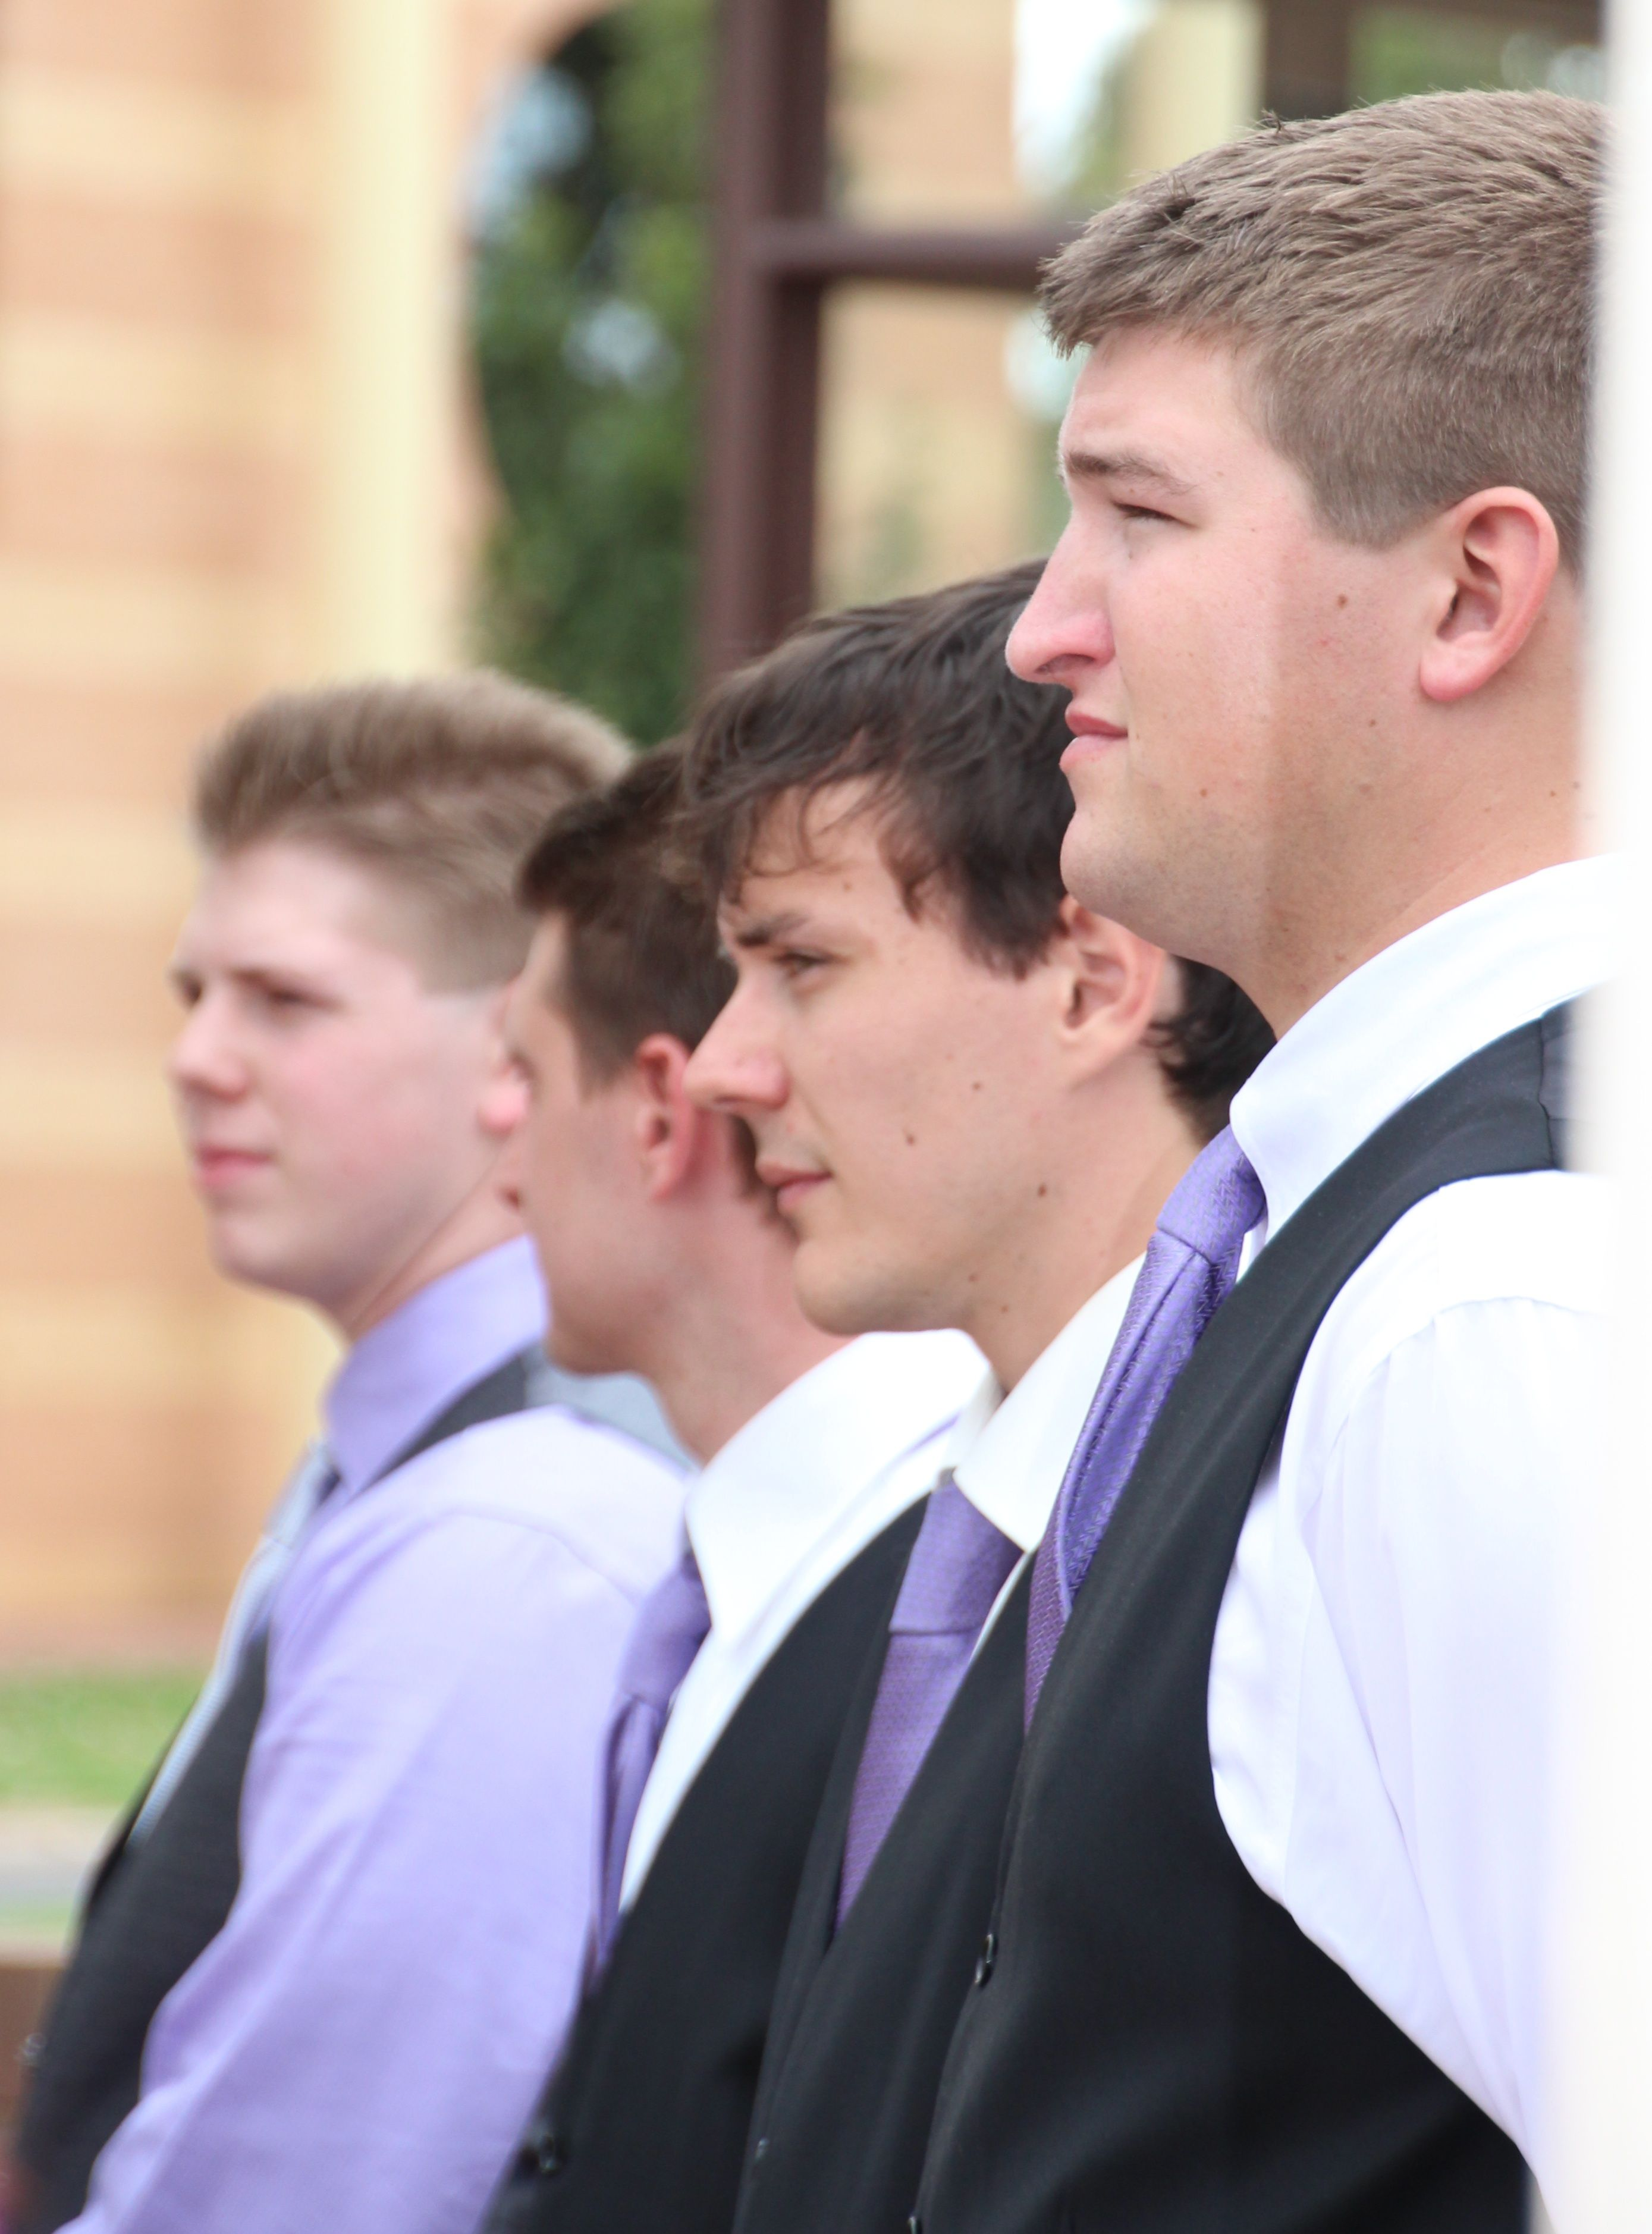 e4c2d23d54db5 Photos from my wedding Groomsmen wore black pants and vest, white shirt and  purple tie Groom wore a grey vest & pants, purple shirt and silver tie!